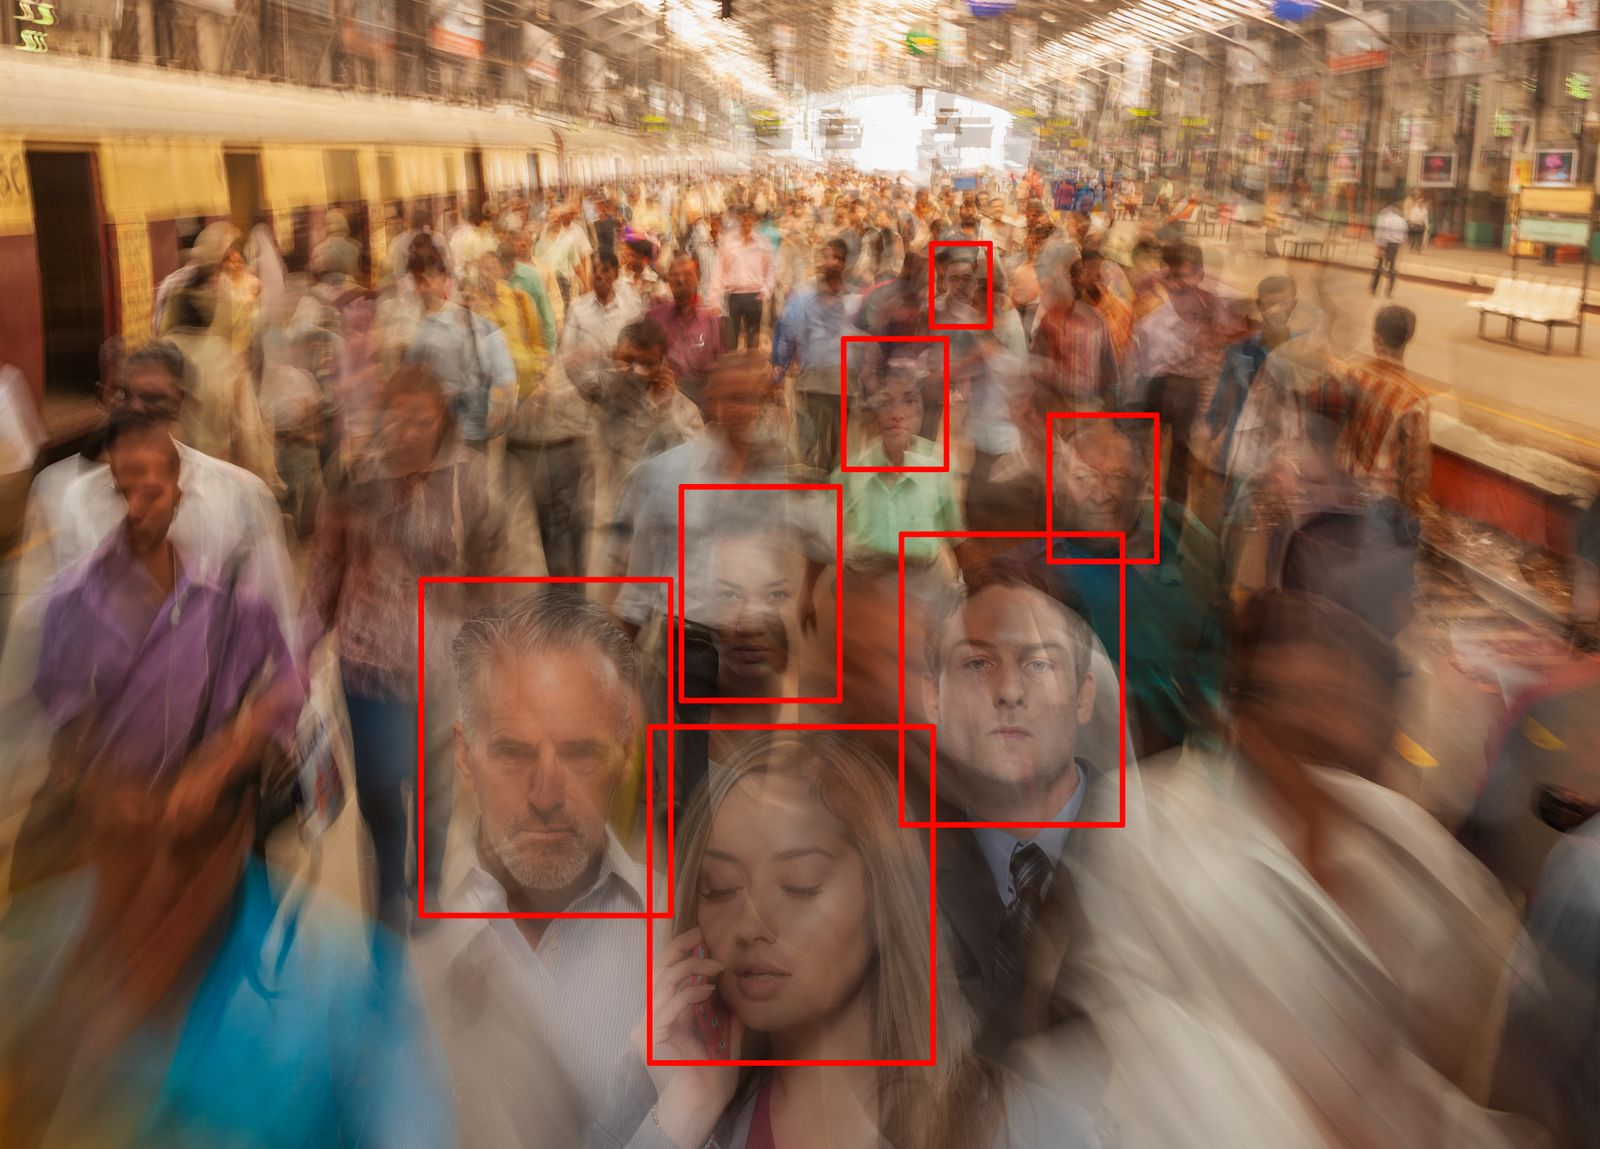 Facial Crowd Recognition Technology